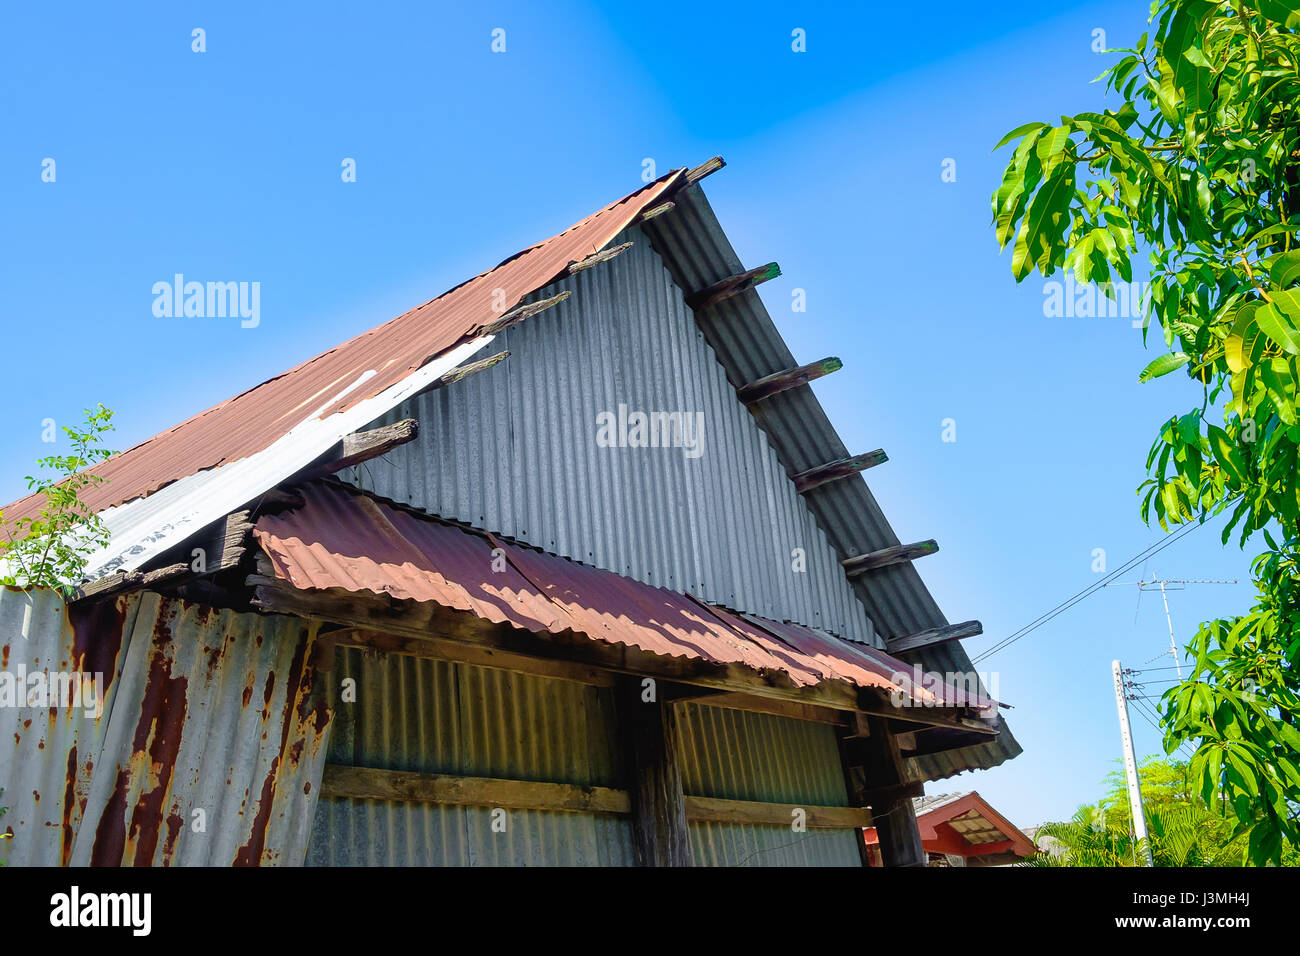 old rusty galvanized sheet (zinc sheet) building with green tree and blue sky. - Stock Image